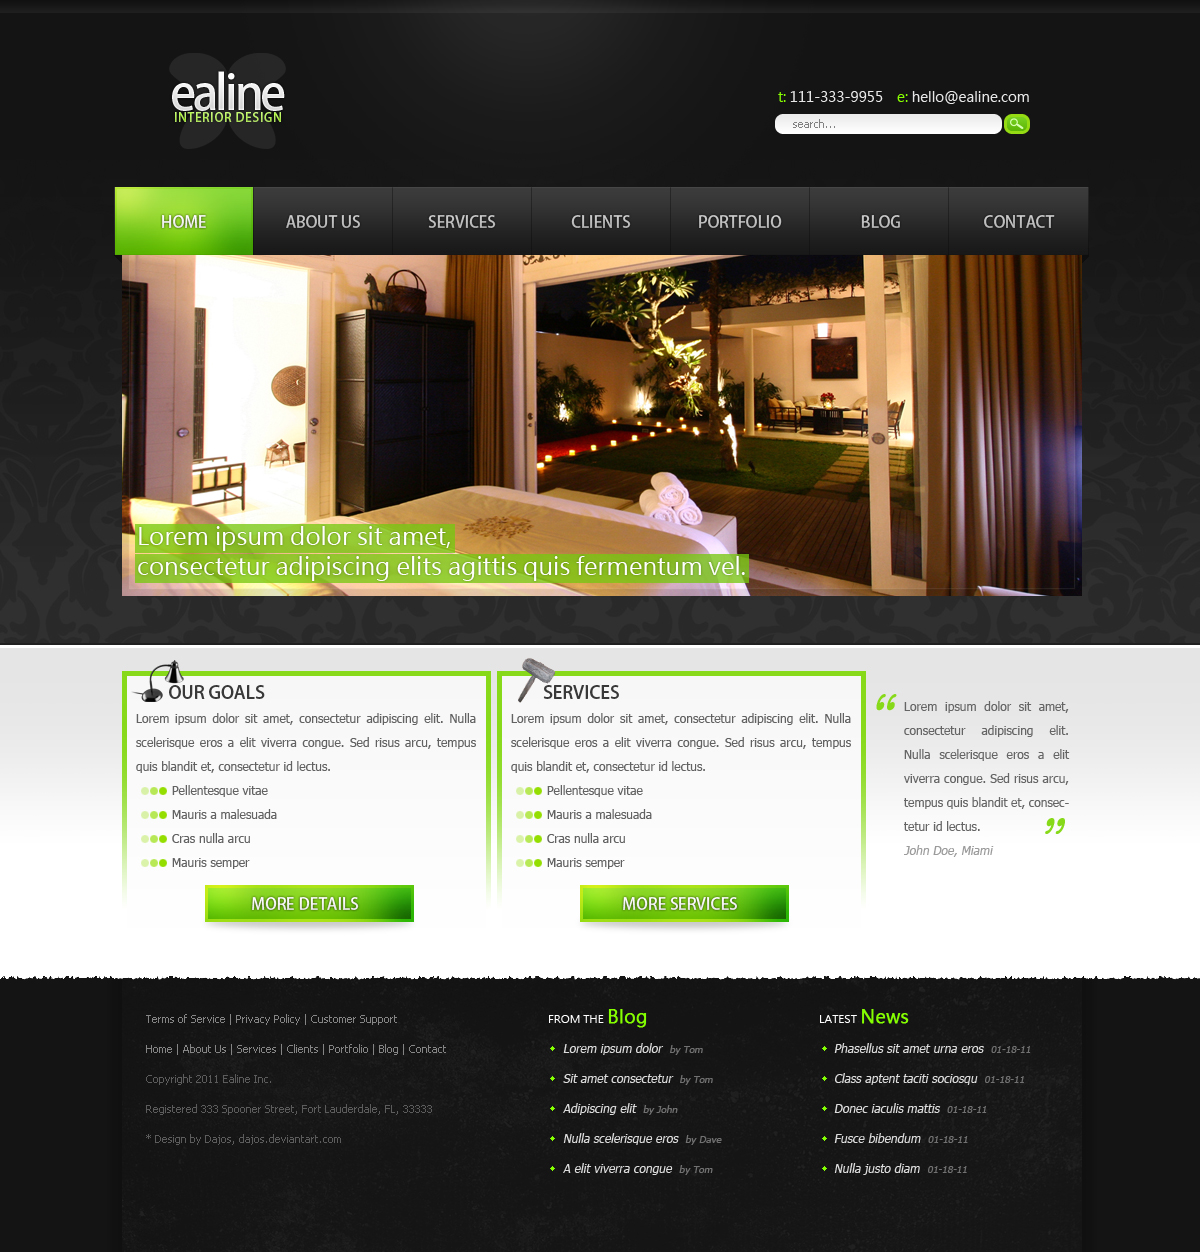 Ealine interior design web by dajos on deviantart Interior decorating websites